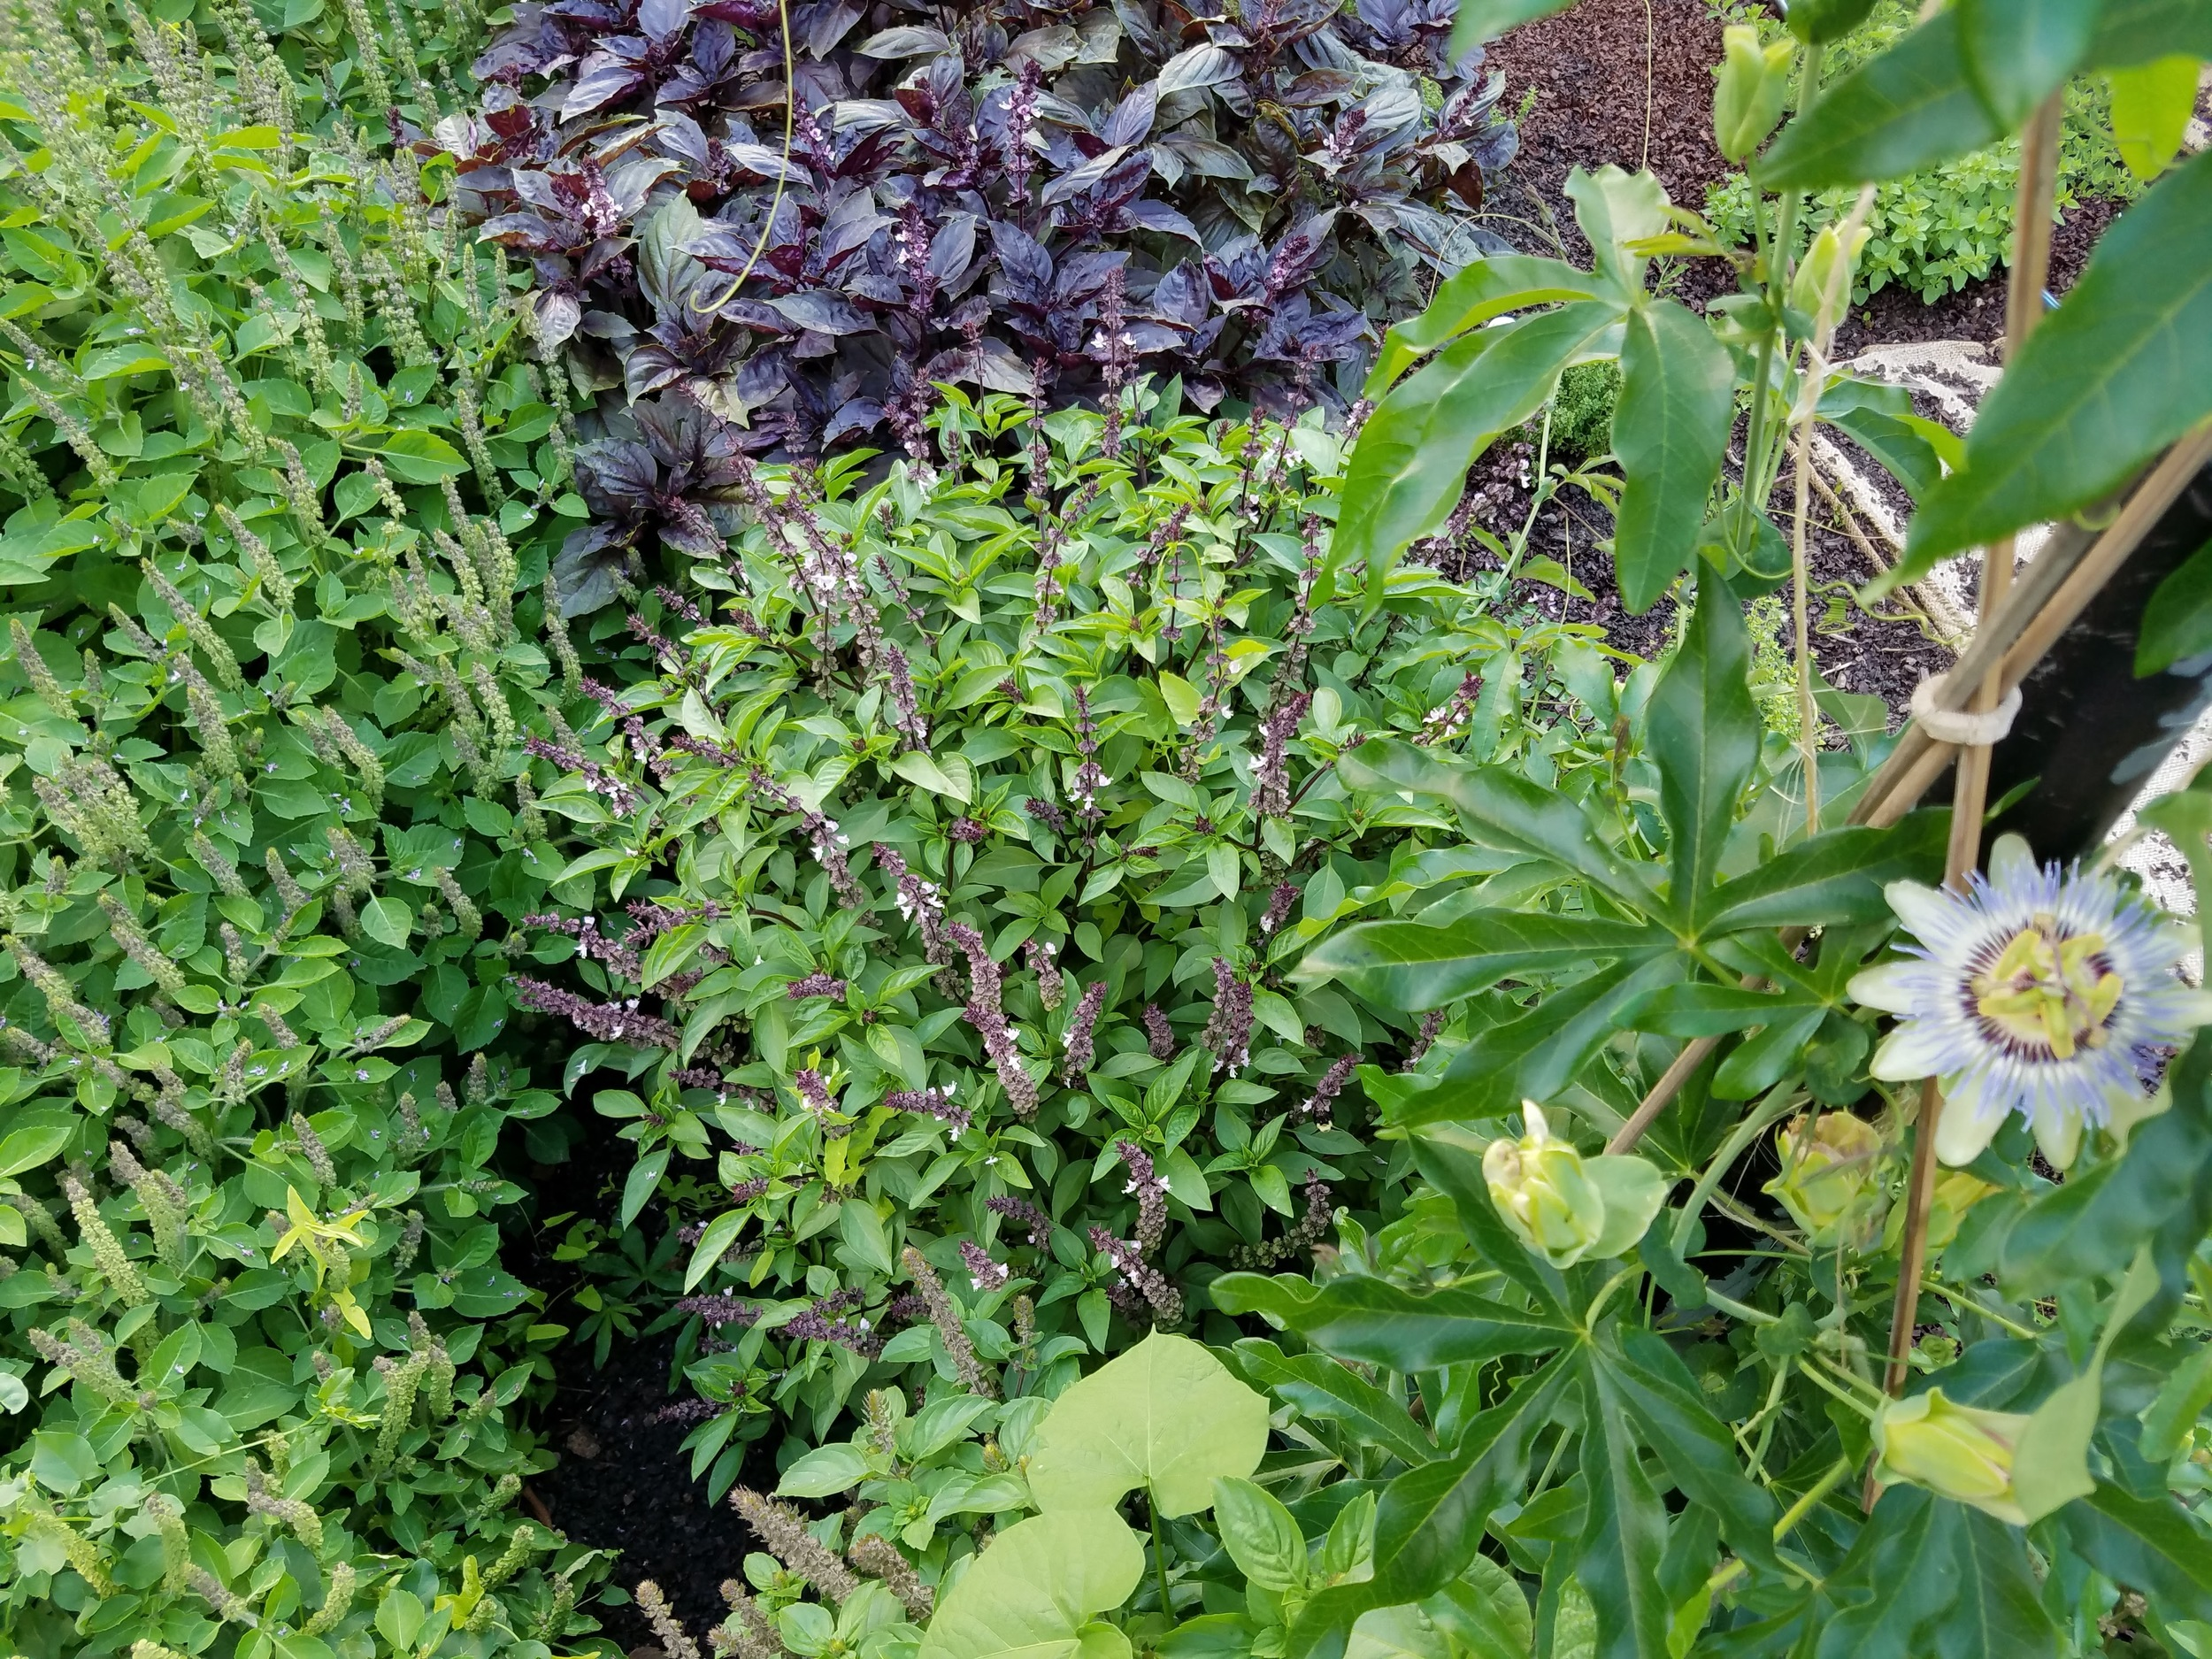 Passion Flowers and Basil